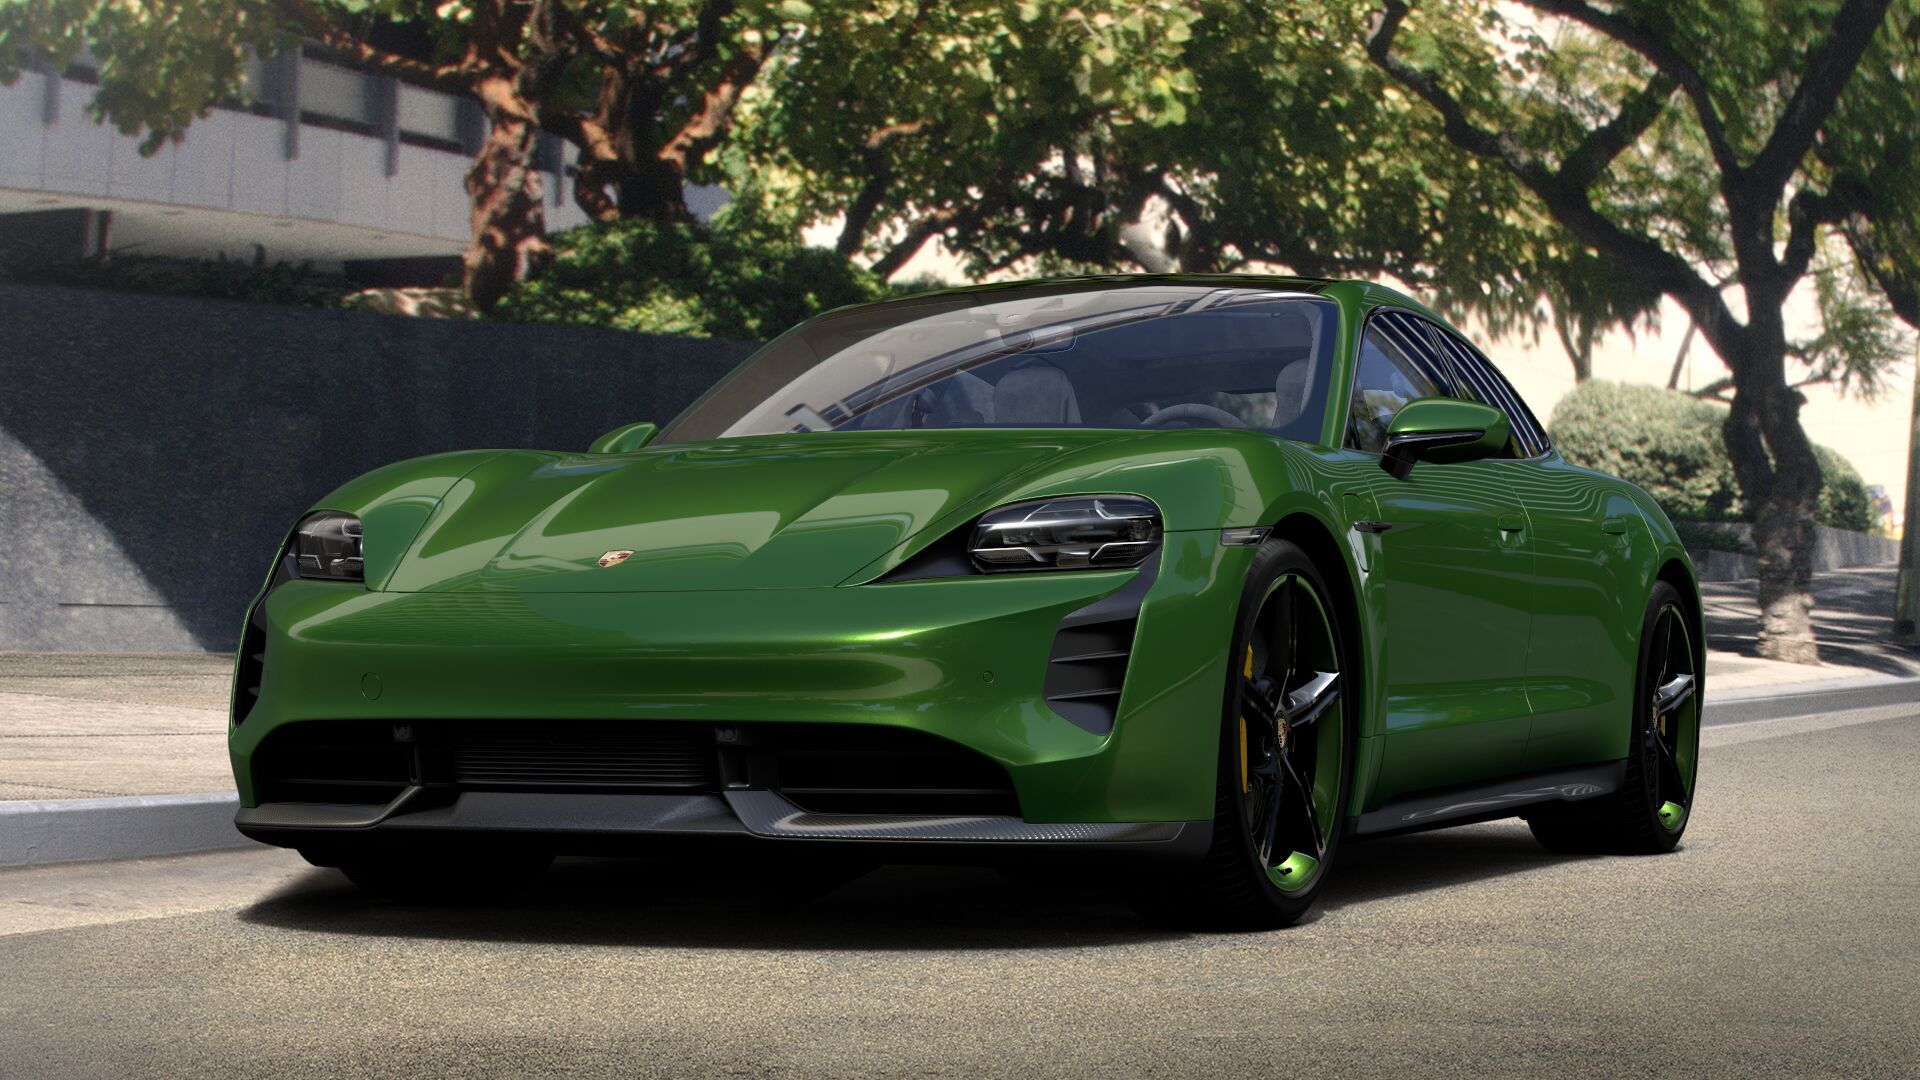 How We'd Spec It: Loaded Porsche Taycan EV Comes to $226,010